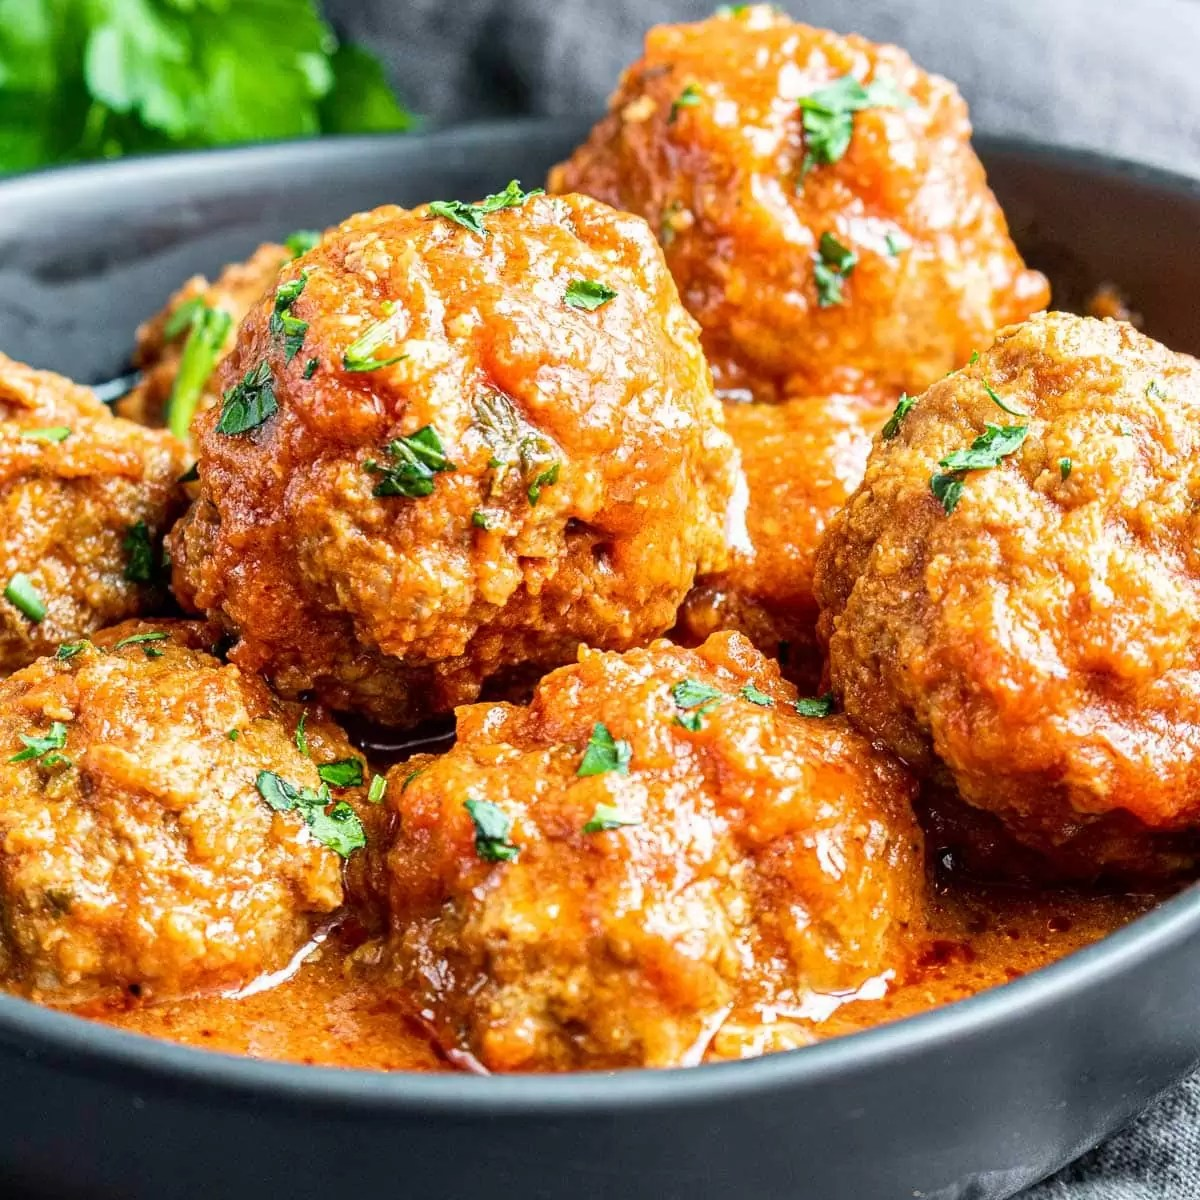 Instant Pot Meatballs with sauce